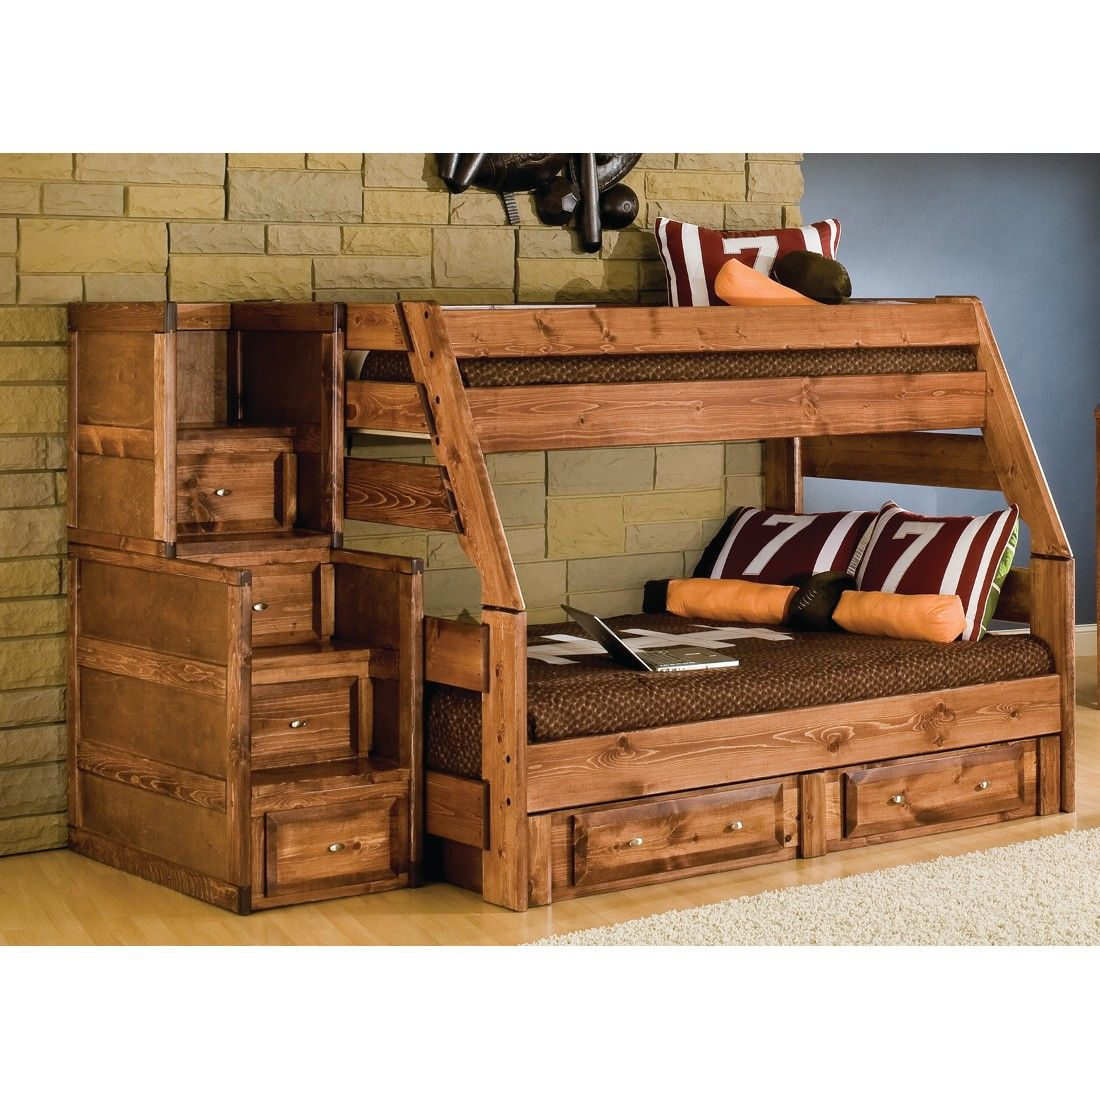 conns bedroom furniture. Visions Twin Over Full Bunk Bed  Cocoa 4720 Conn s Kids Bedroom FurnitureBedroom